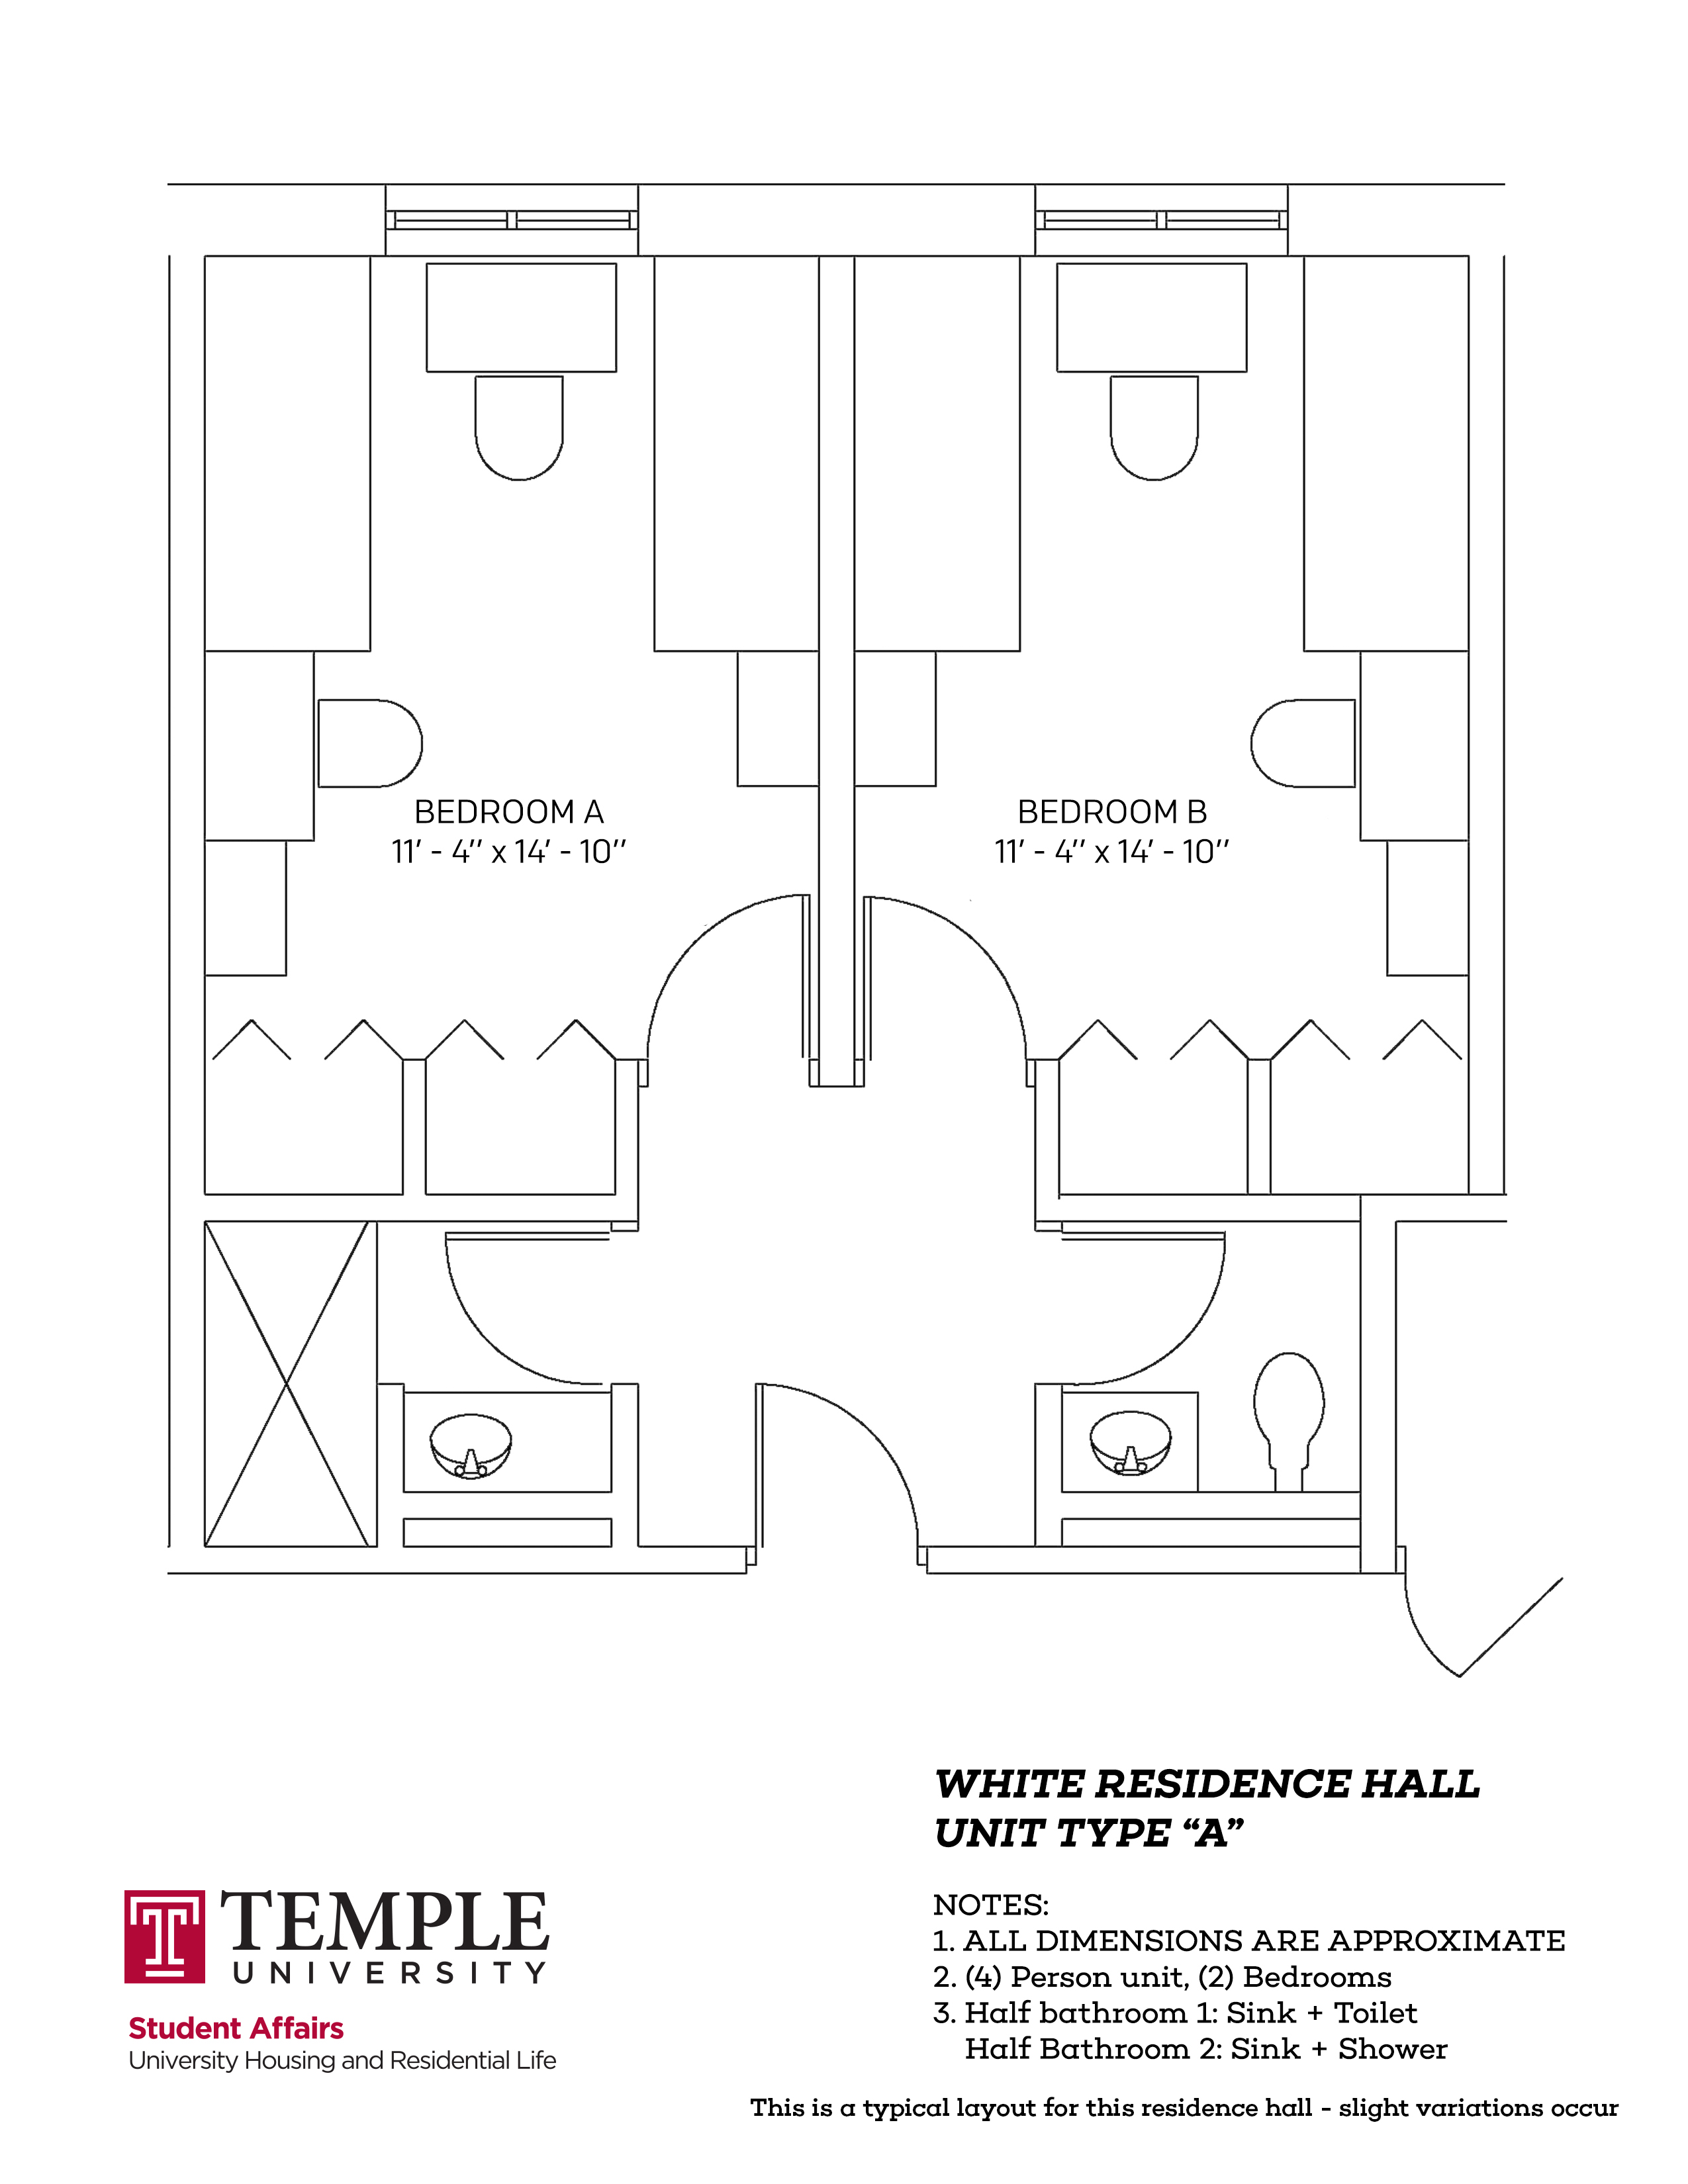 James S. White Hall: Type A